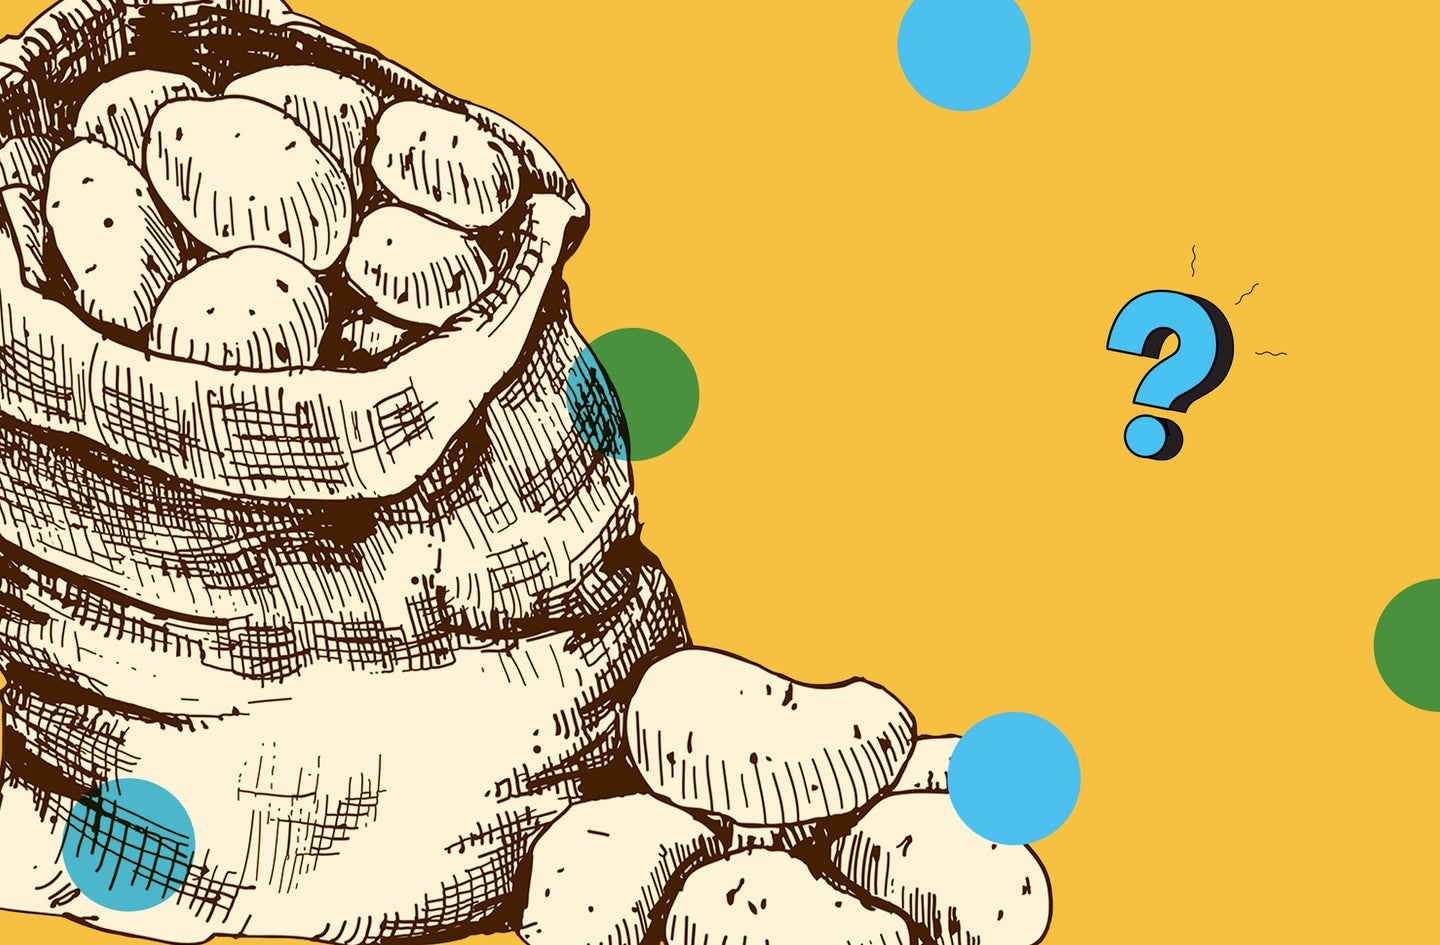 The Ask Us Anything logo with an illustrated heap of potatoes.